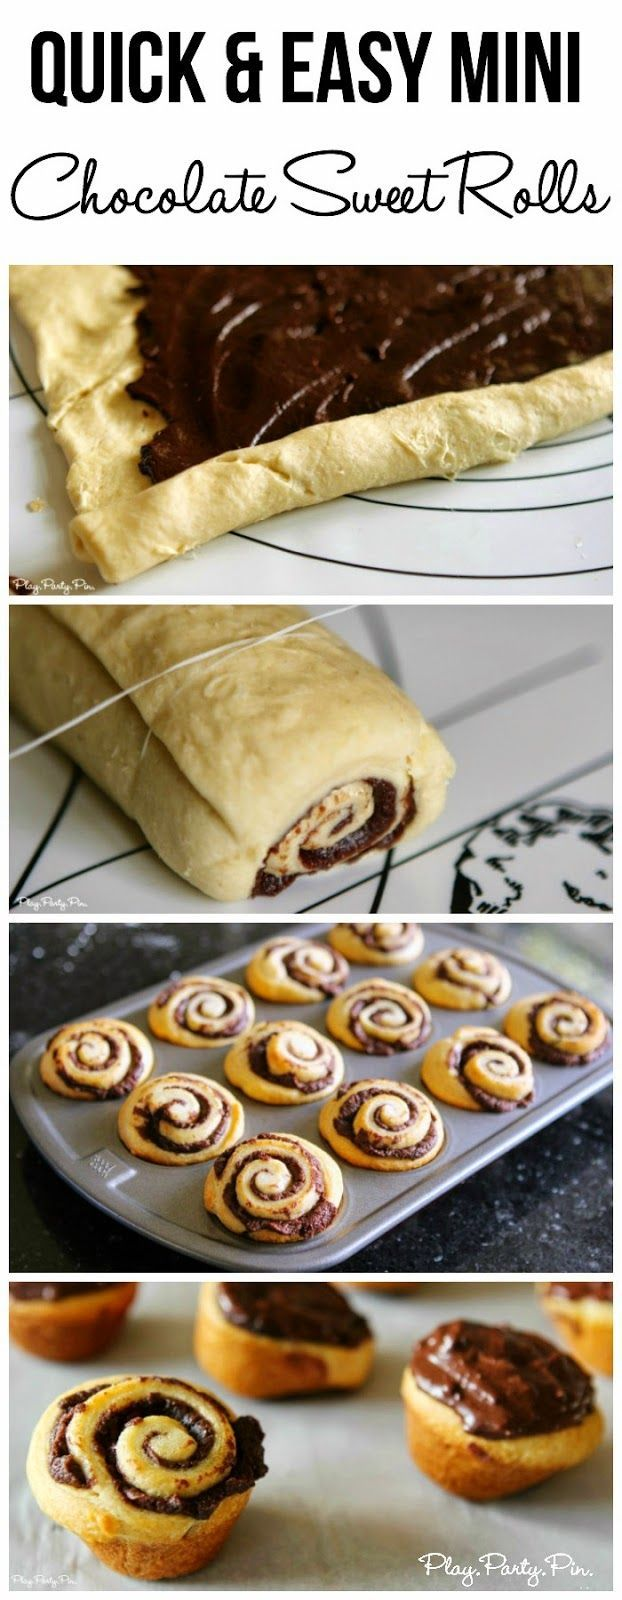 Mini chocolate sweet rolls made in under 20 minutes from playpartypin.comChocolate Pastry, Chocolates Sweets, Chocolates Rolls, Chocolates Filling, Ads Chocolates, Chocolate Sweets, Chocolate Roll Recipe, Breakfast Recipe, Diy Chocolates